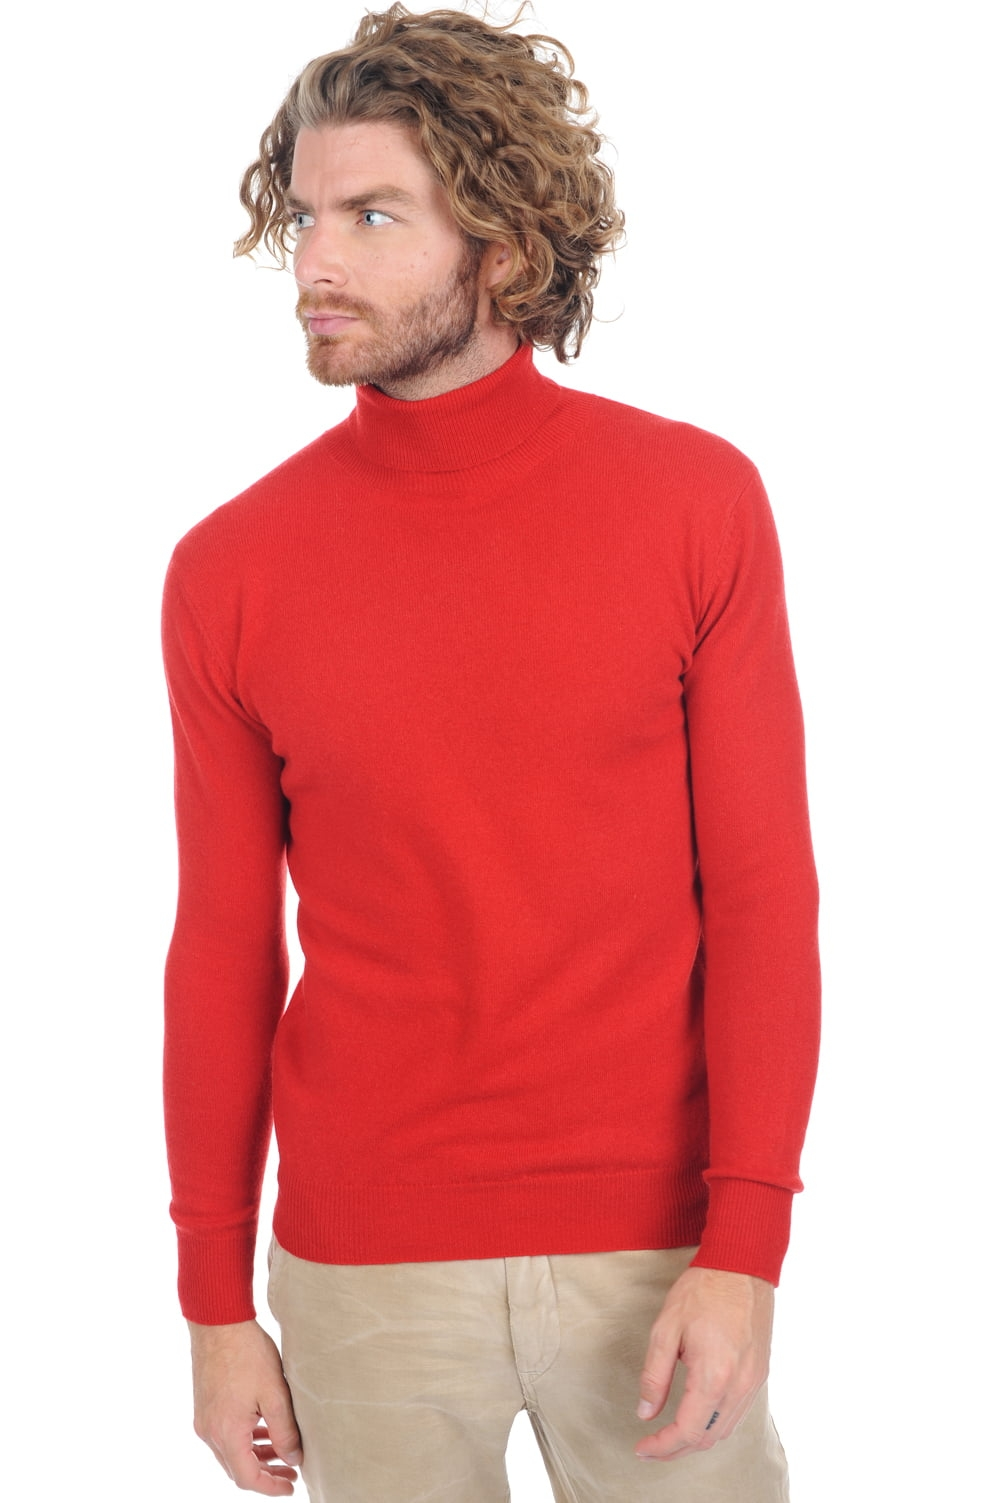 cachemire pull homme col roule tarry ultra red m